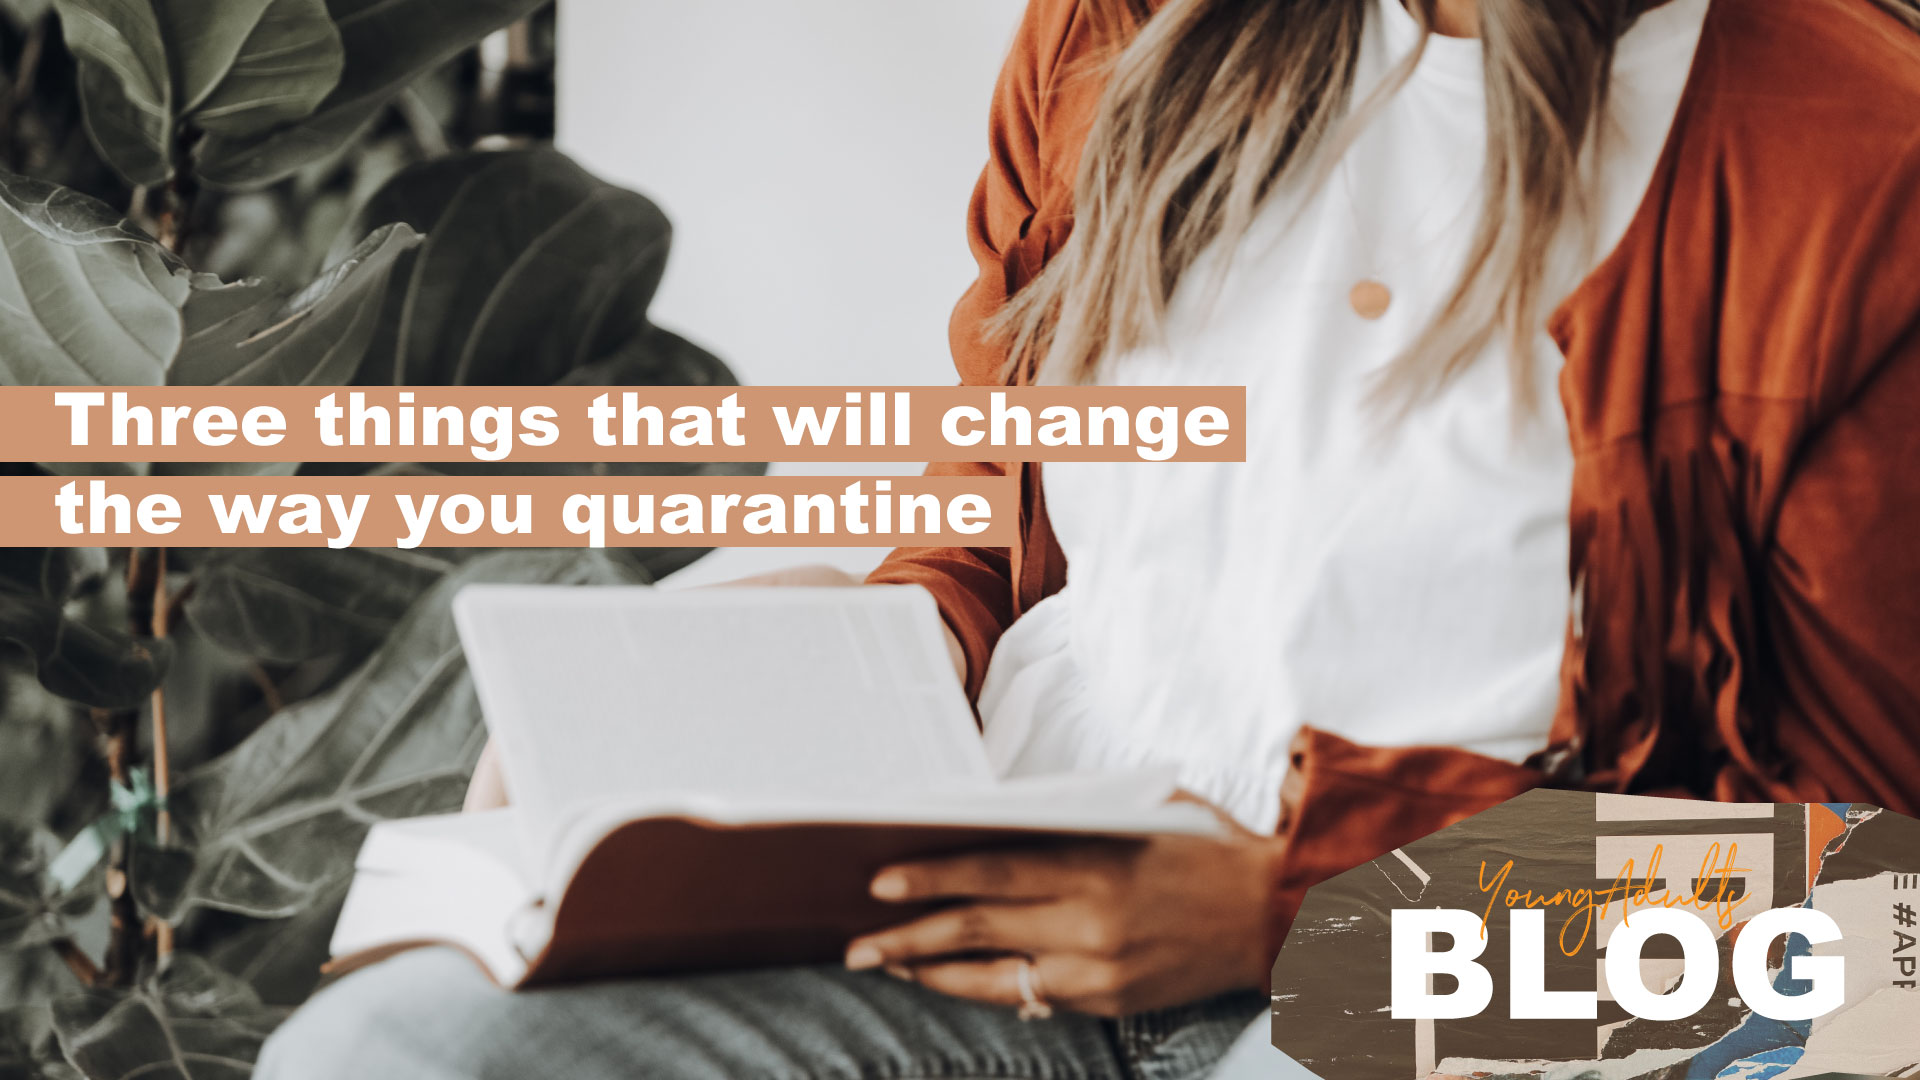 3-Ways-to-change-the-way-you-quarantine